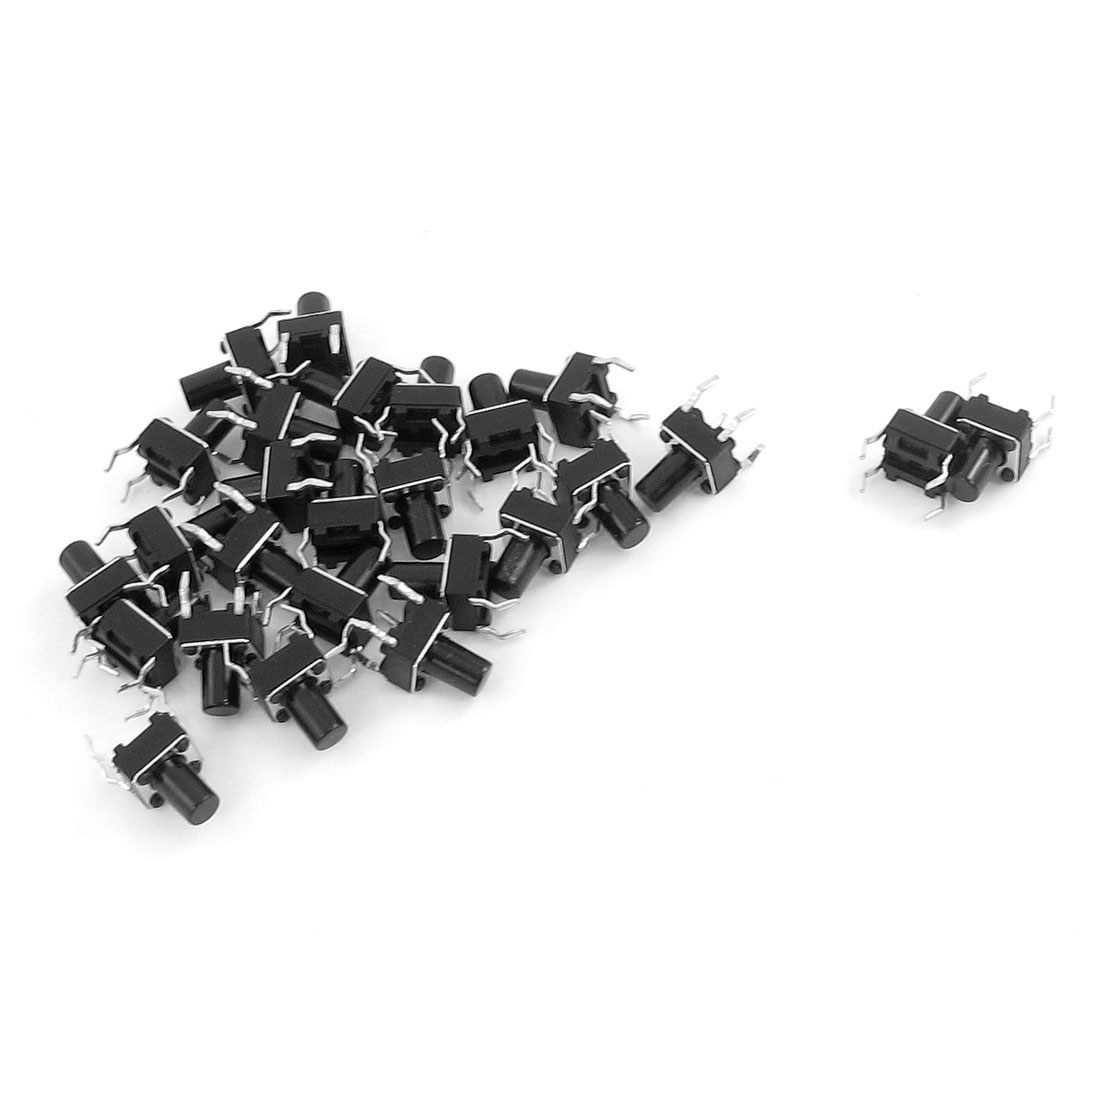 Unique Bargains 26 Pcs 6 x 6 x 12mm Panel Momentary Tactile Tact Push Button Switch 4 Pin Black